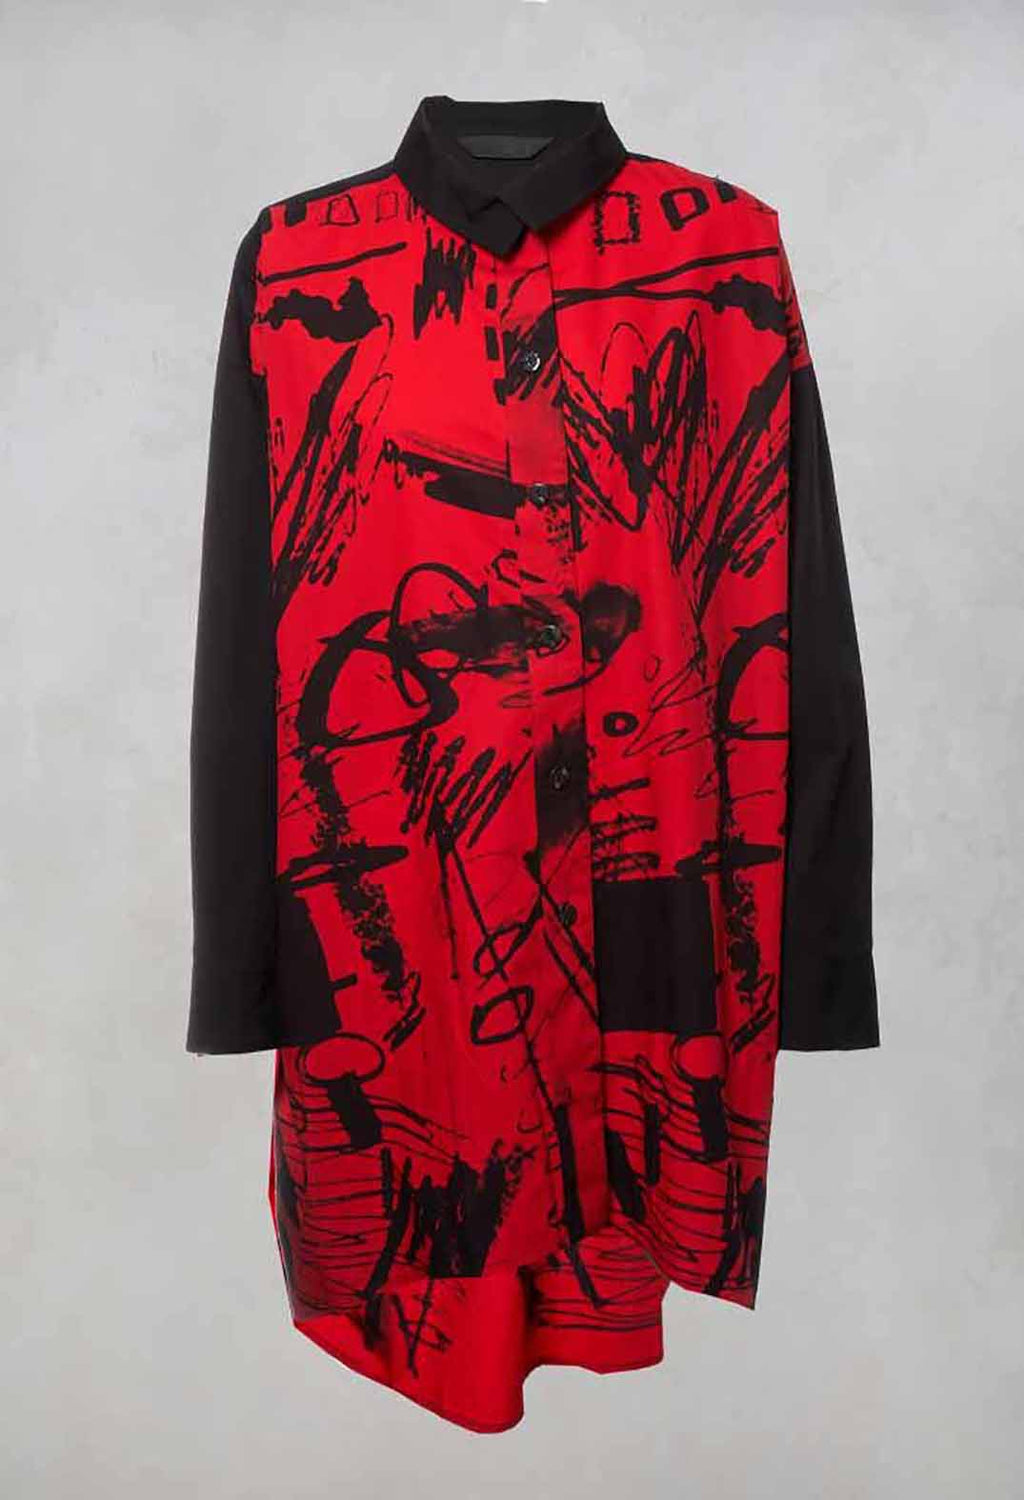 Printed Longline Shirt in Red / Black